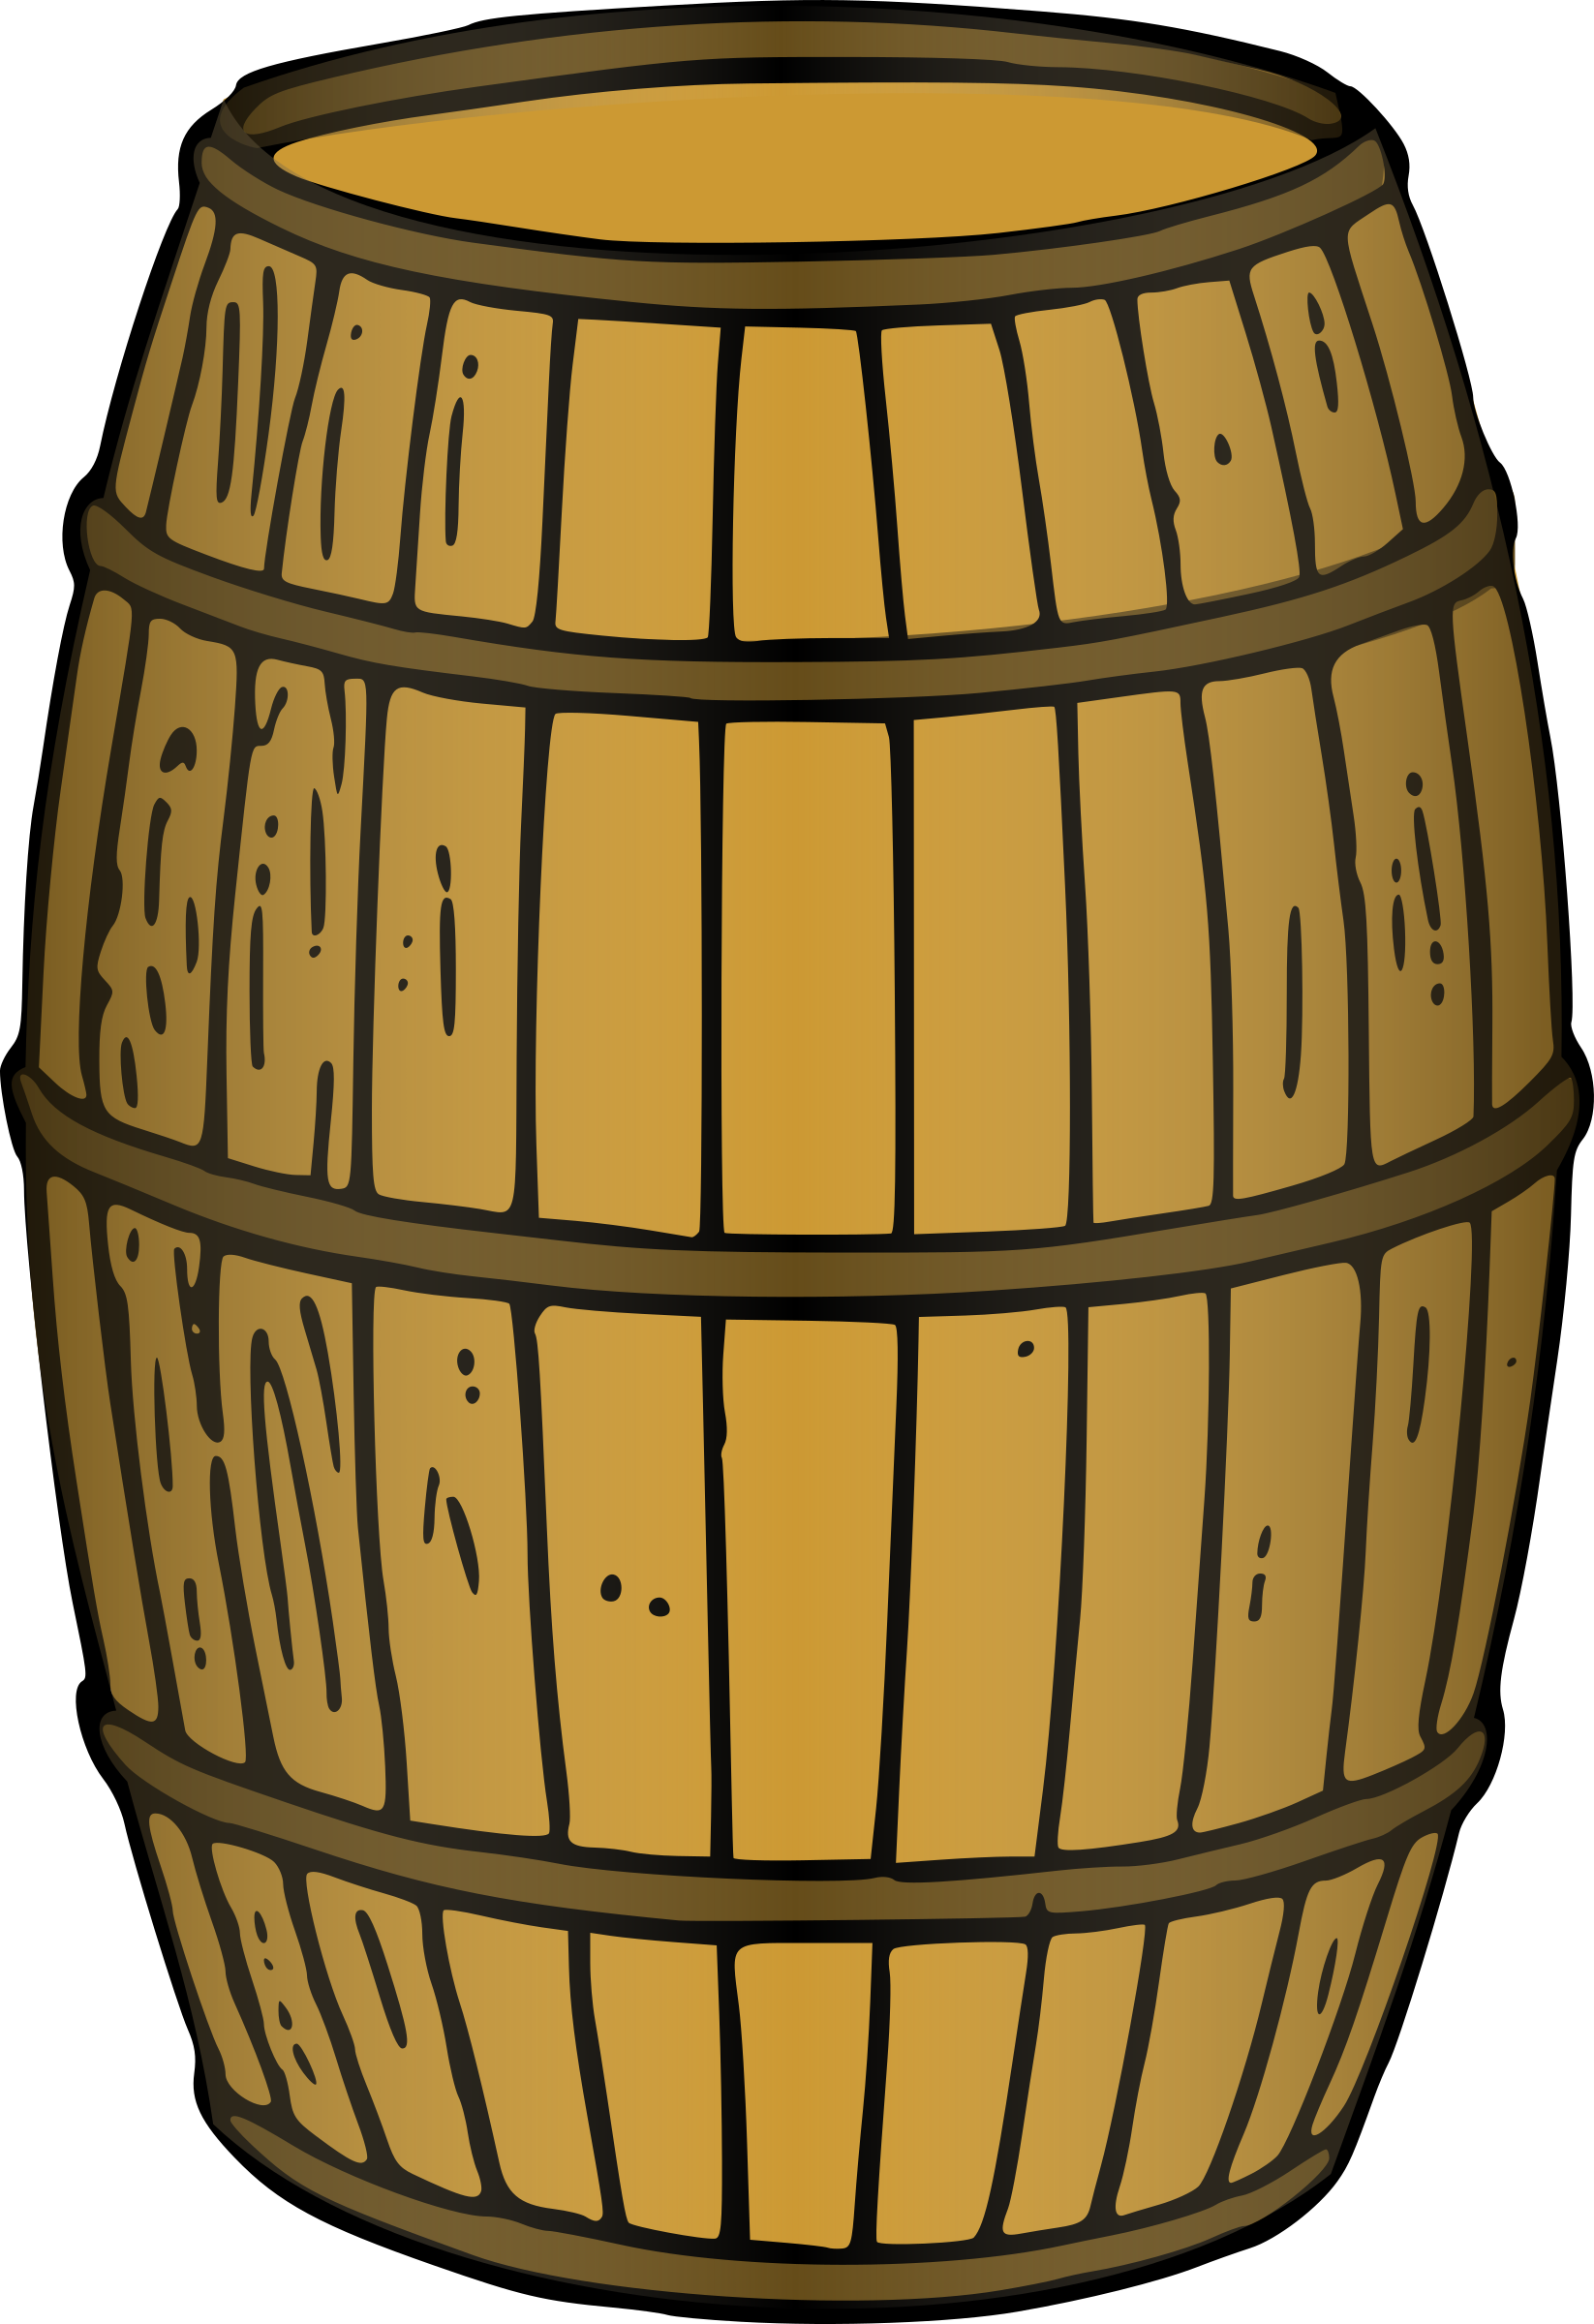 Housekeeping clipart practice. Barrel rendered by kevie